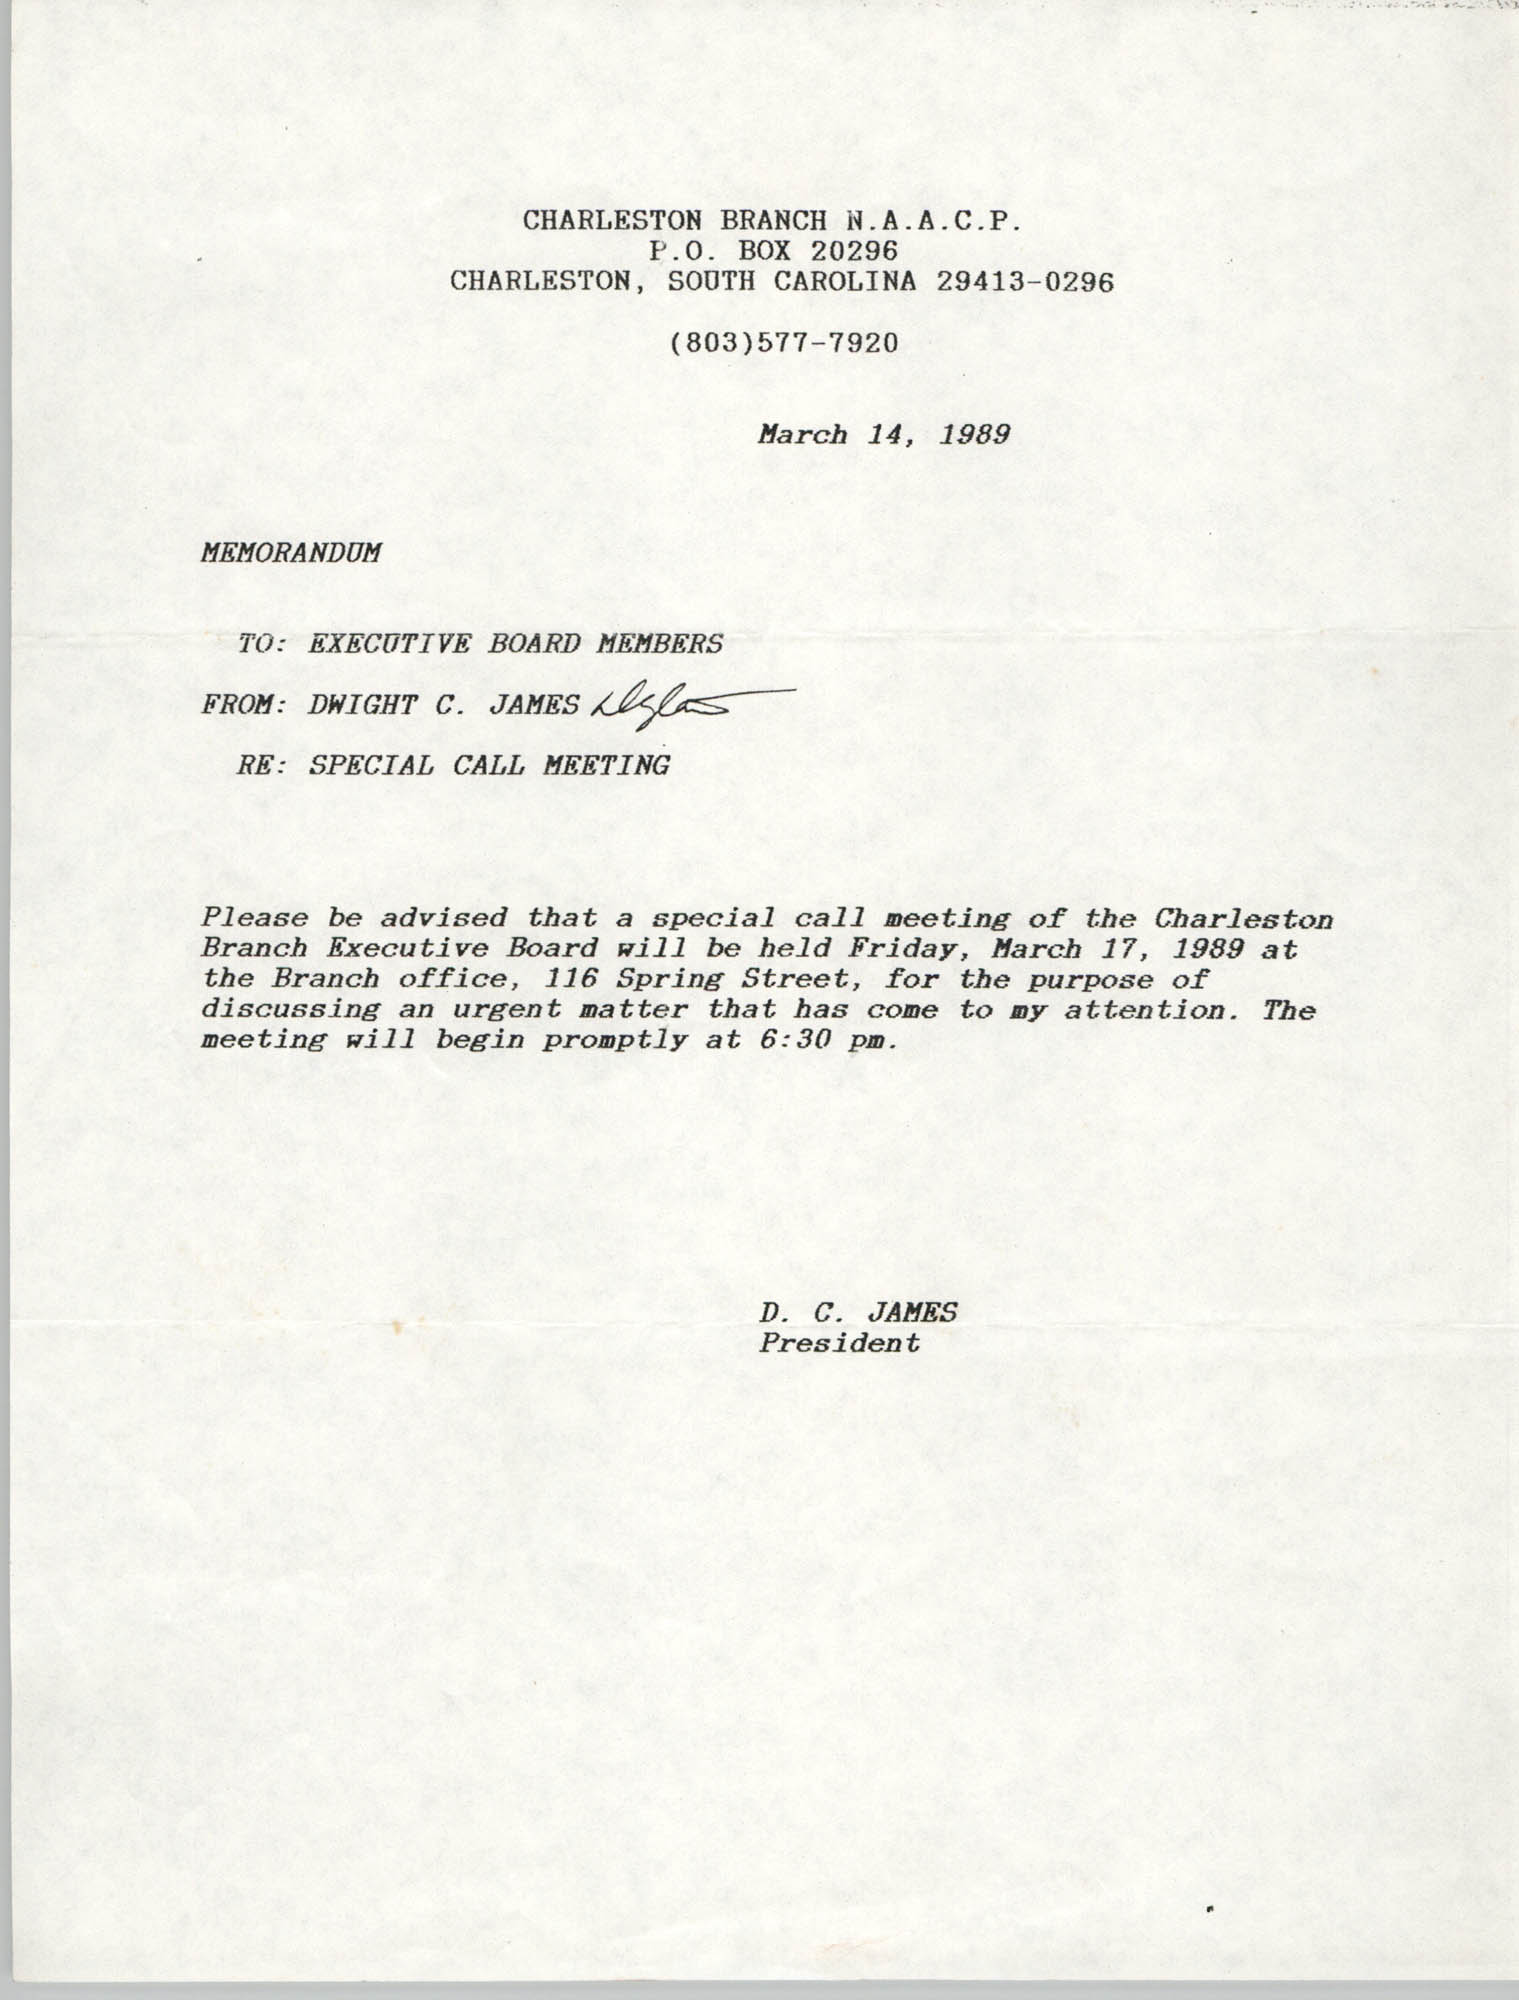 Charleston Branch of the NAACP Memorandum, March 14, 1989